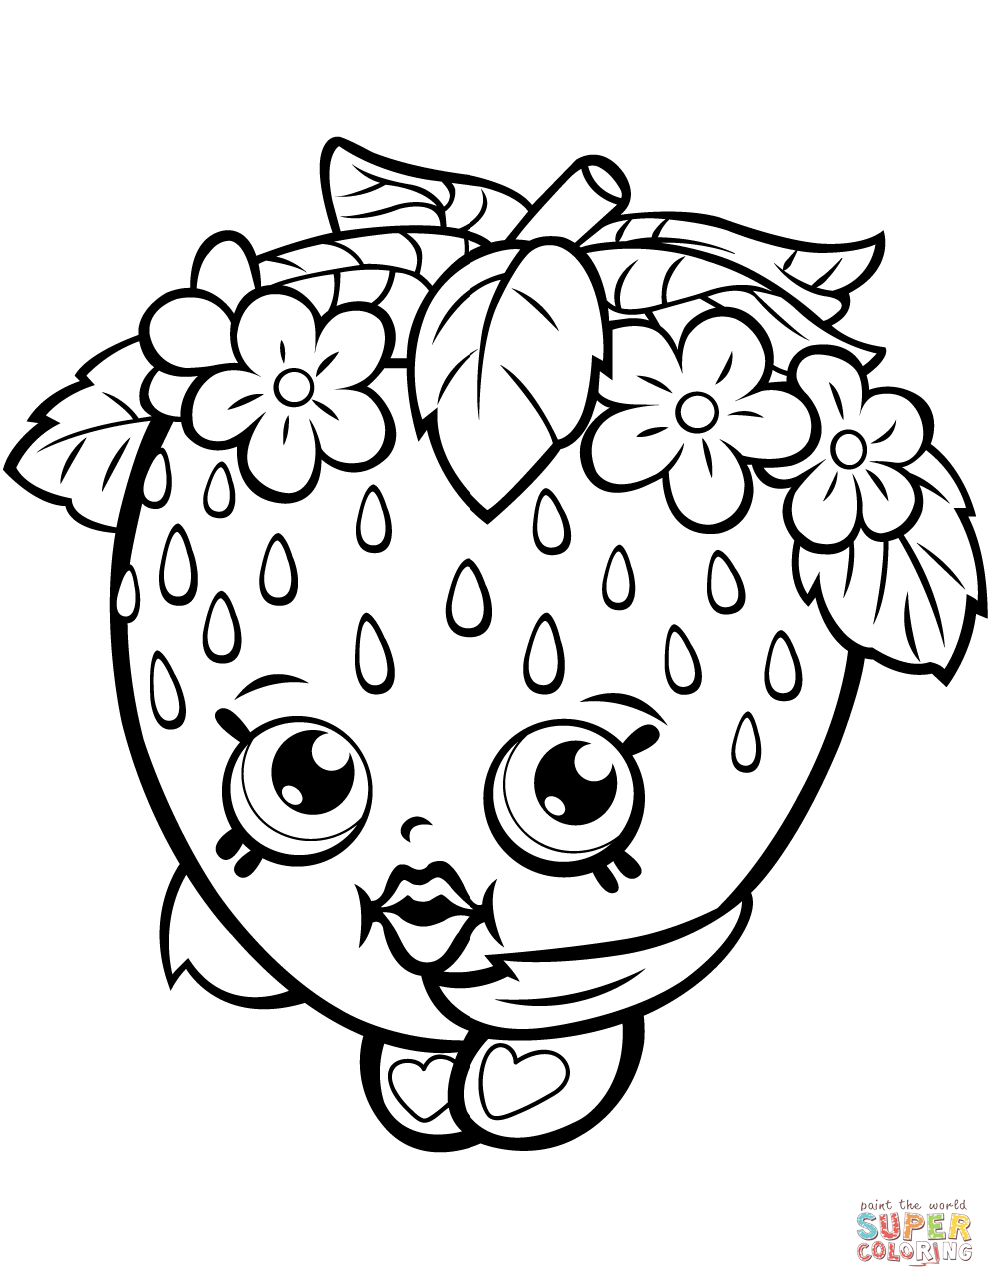 Strawberry Kiss Shopkin Coloring Page Free Printable